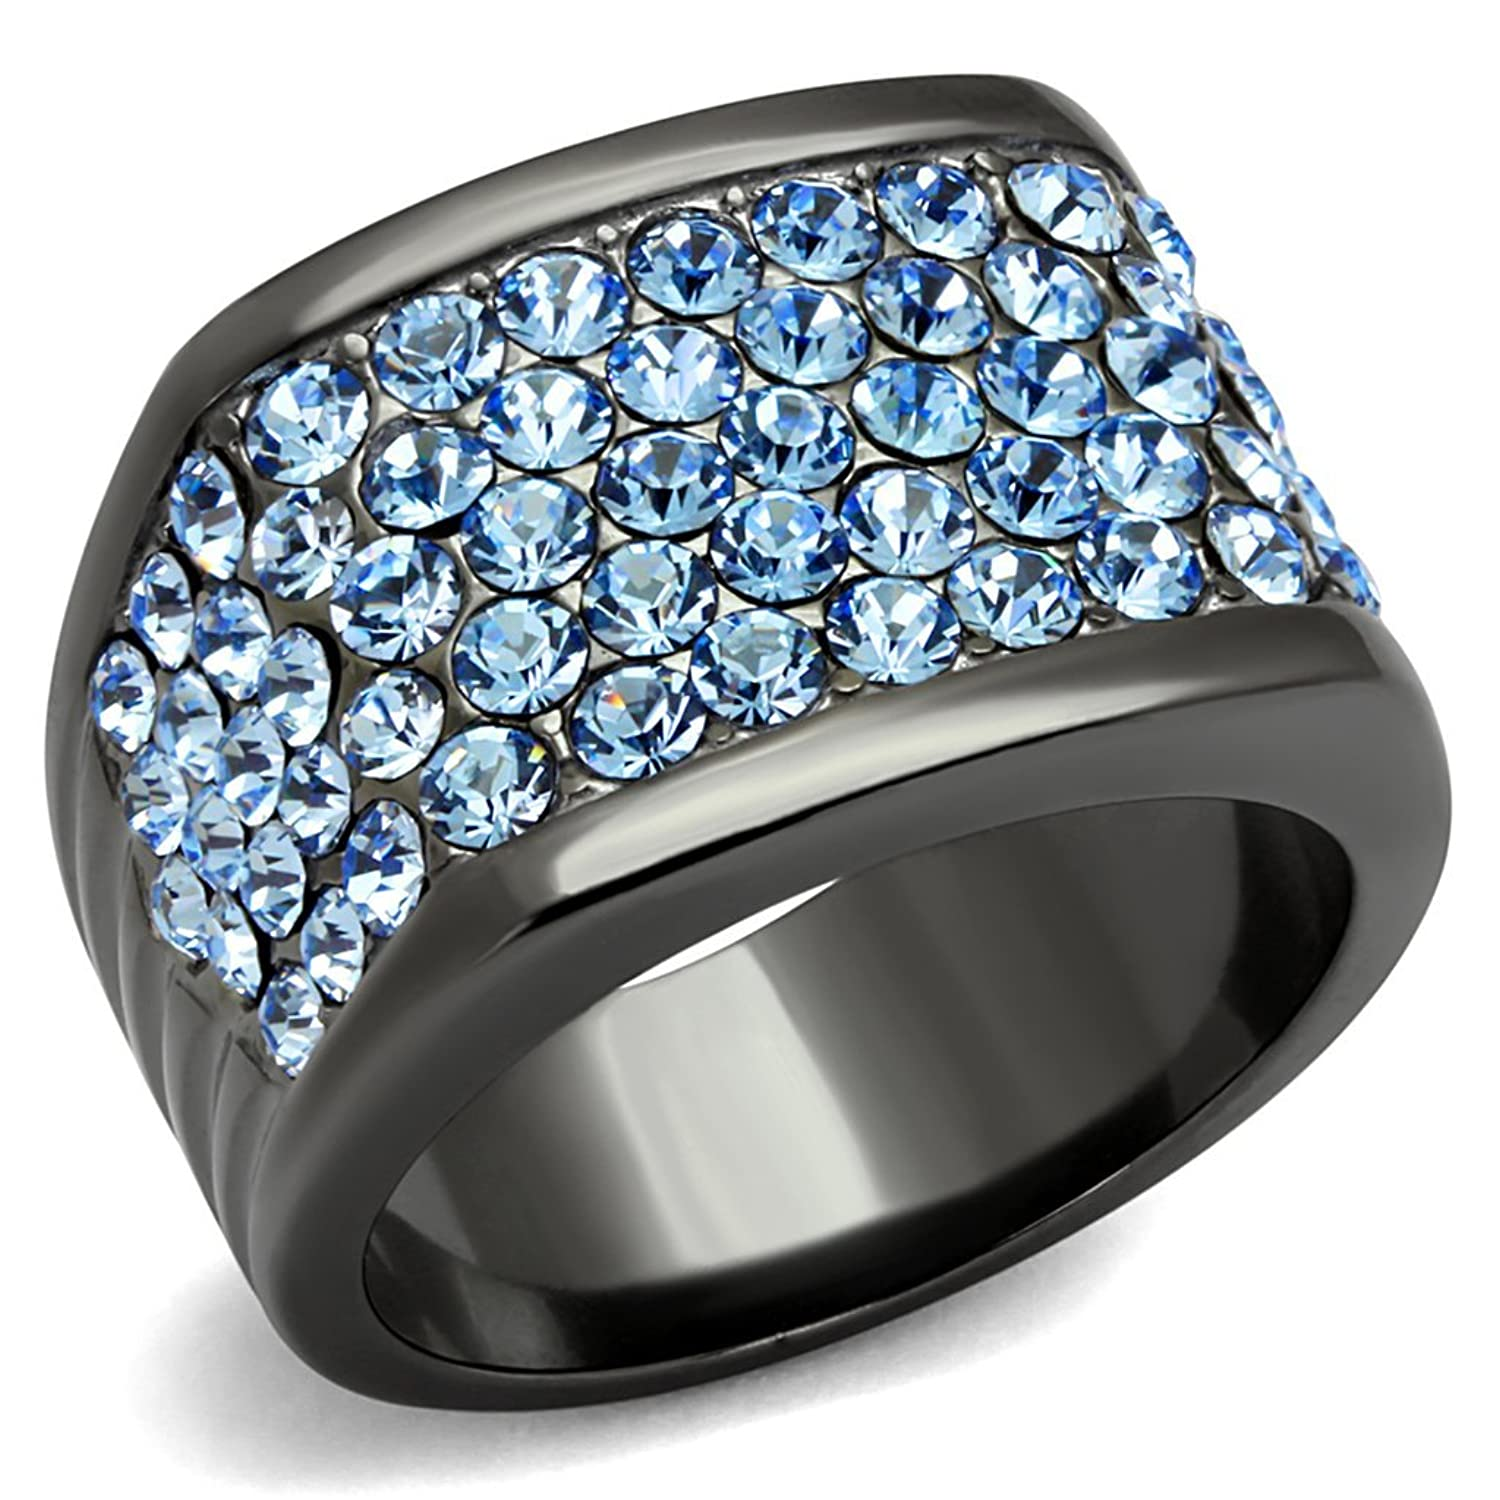 Women's Light Blue Crystal Pave Ip Light Black Stainless Steel Cocktail Ring